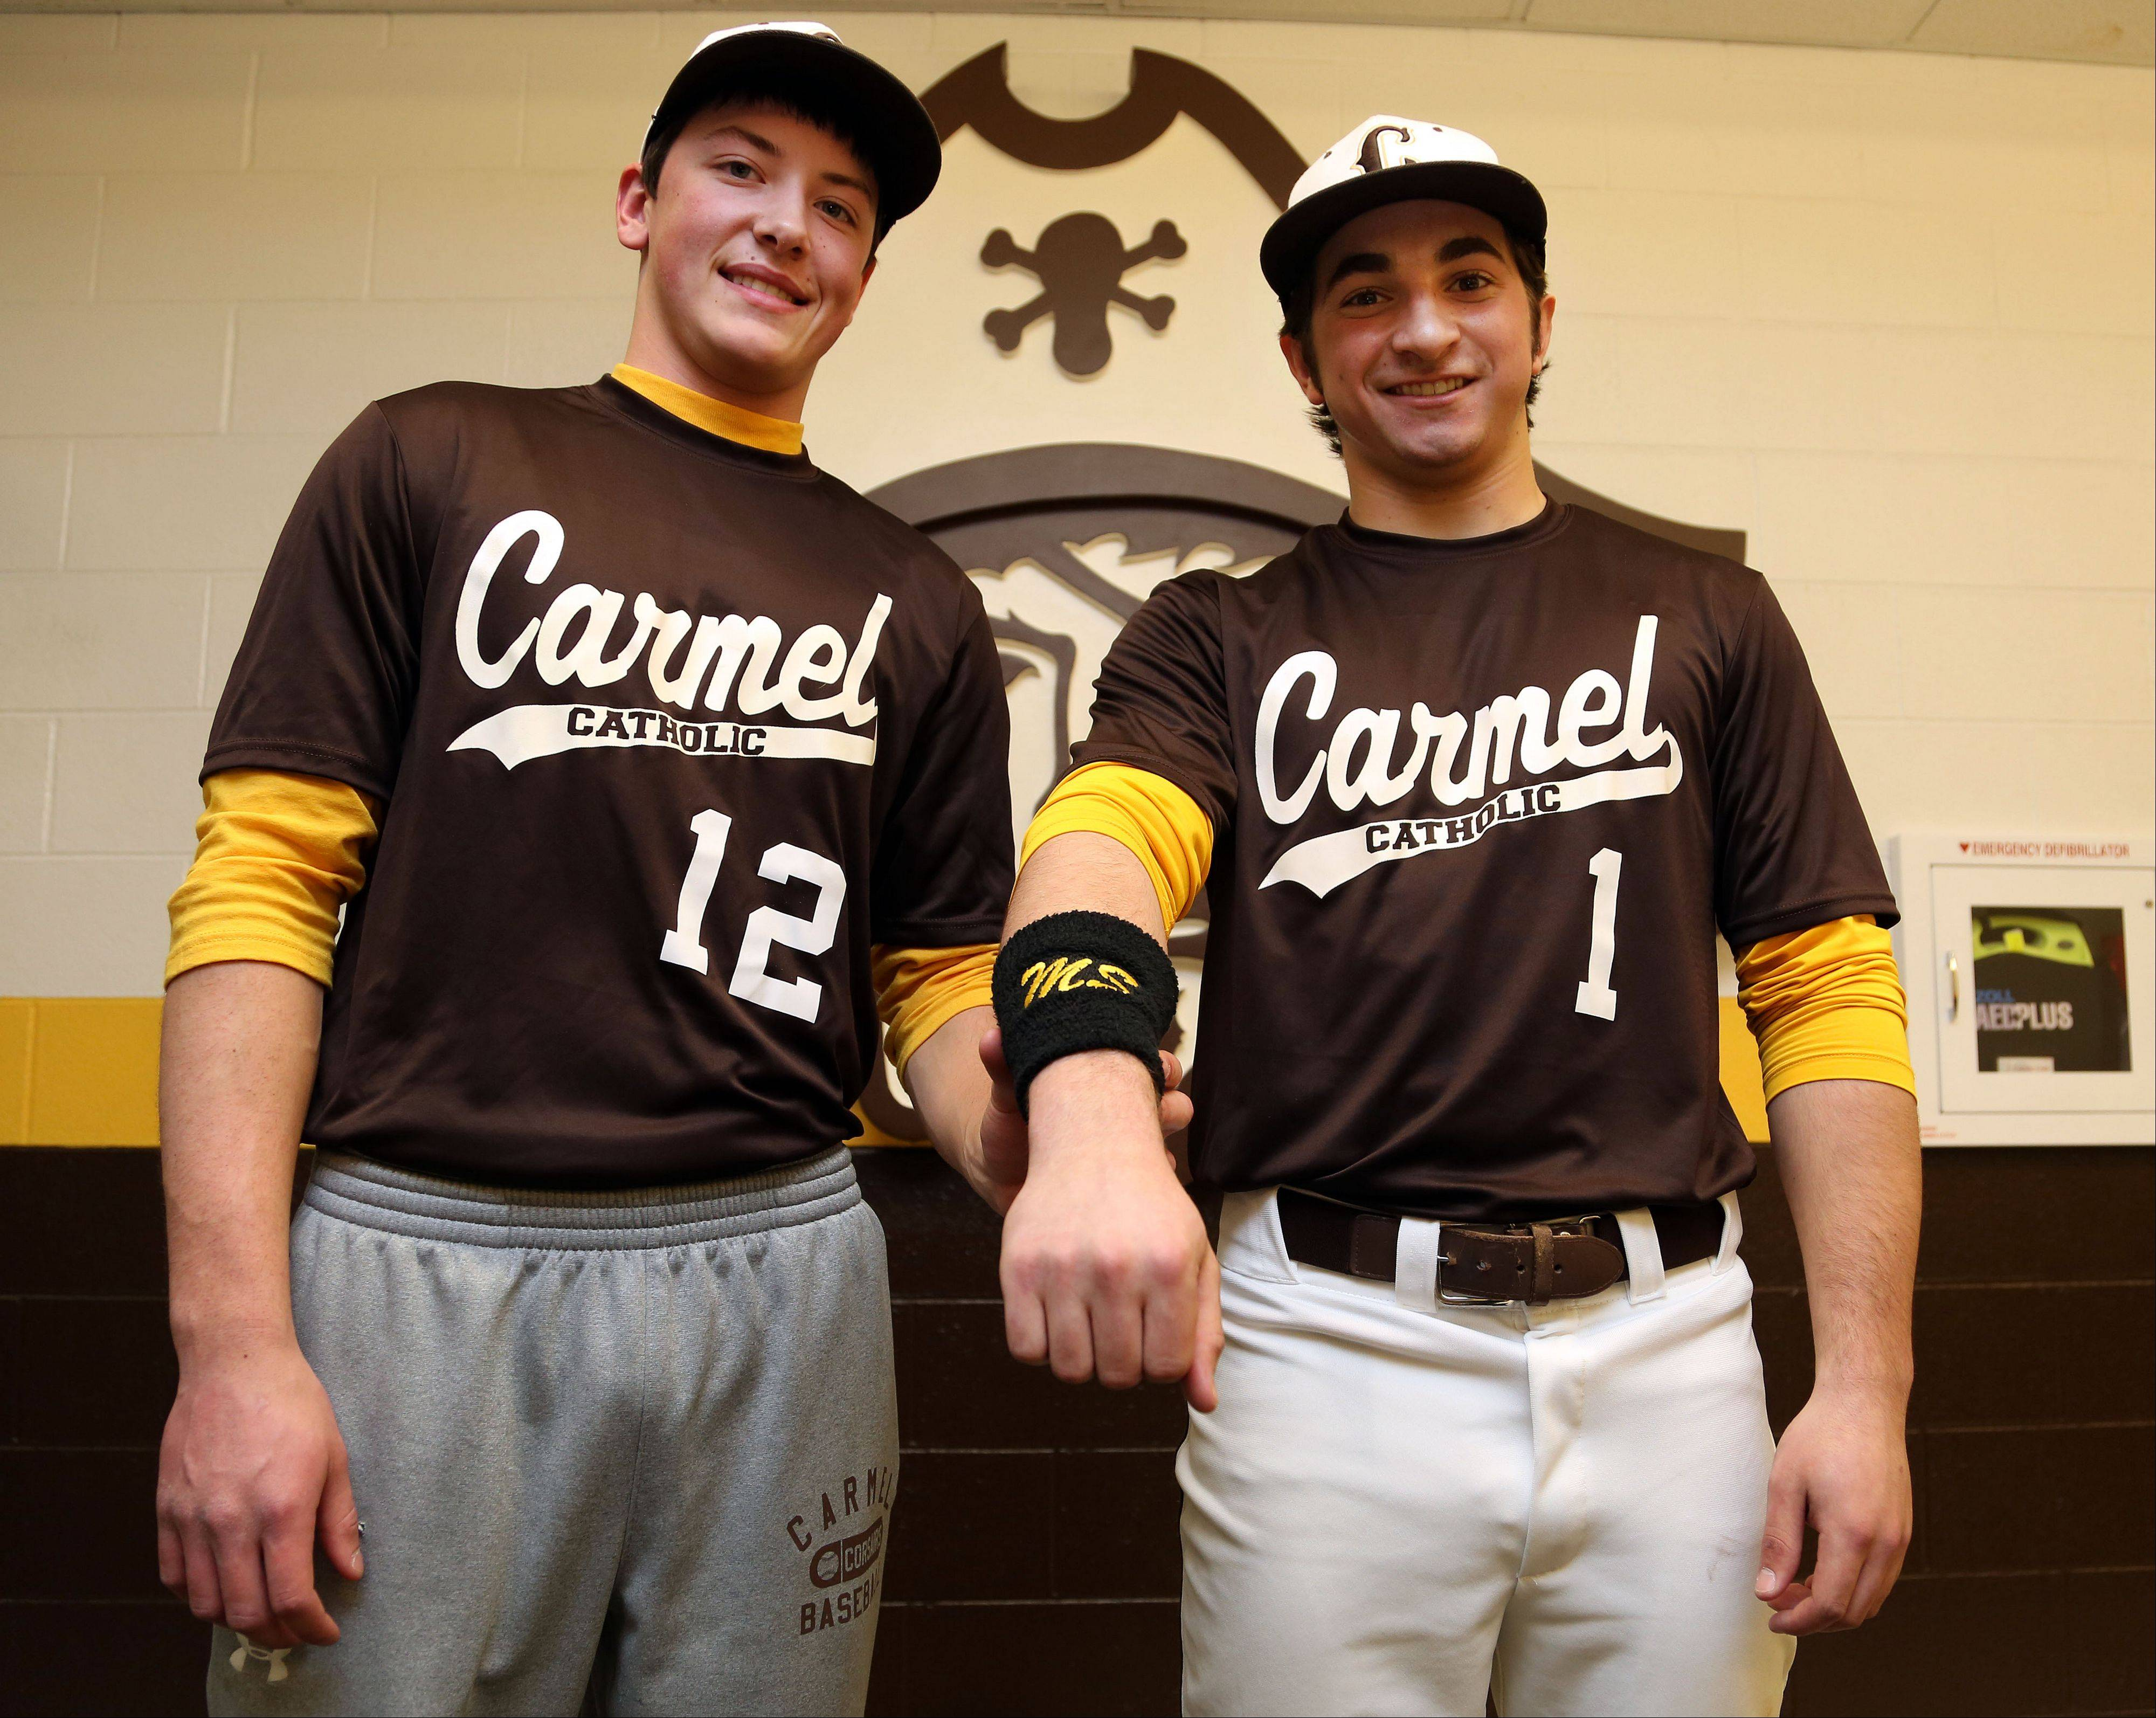 Carmel senior baseball player Matt Schafer, left, displays the wristbands bearing his initials that teammate Brett Milazzo designed.